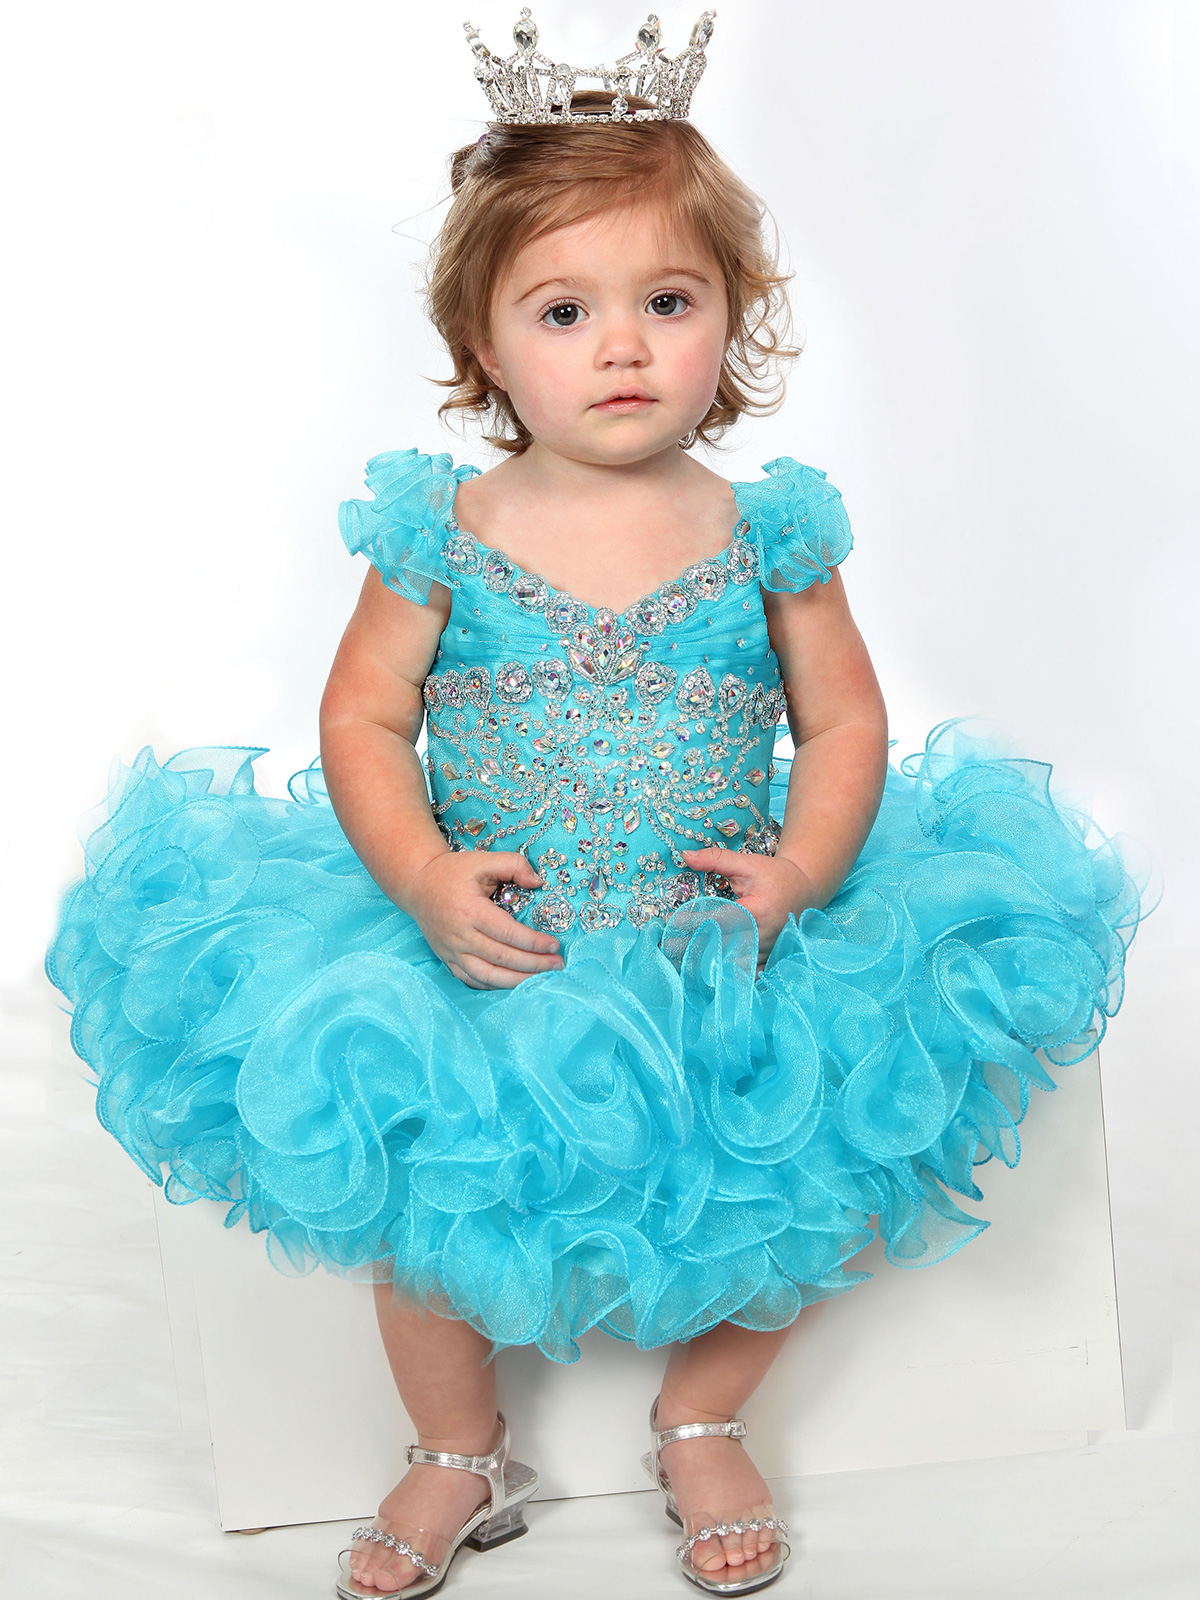 Little girls or pre-teens can be a real challenge to dress when they start to find their sense of personal style. Let them show their personality with the latest trends in girl's clothing. Our selection of top brands ranges from printed dresses and tulle prom gowns to sports tracksuits and patterned smart shirts.